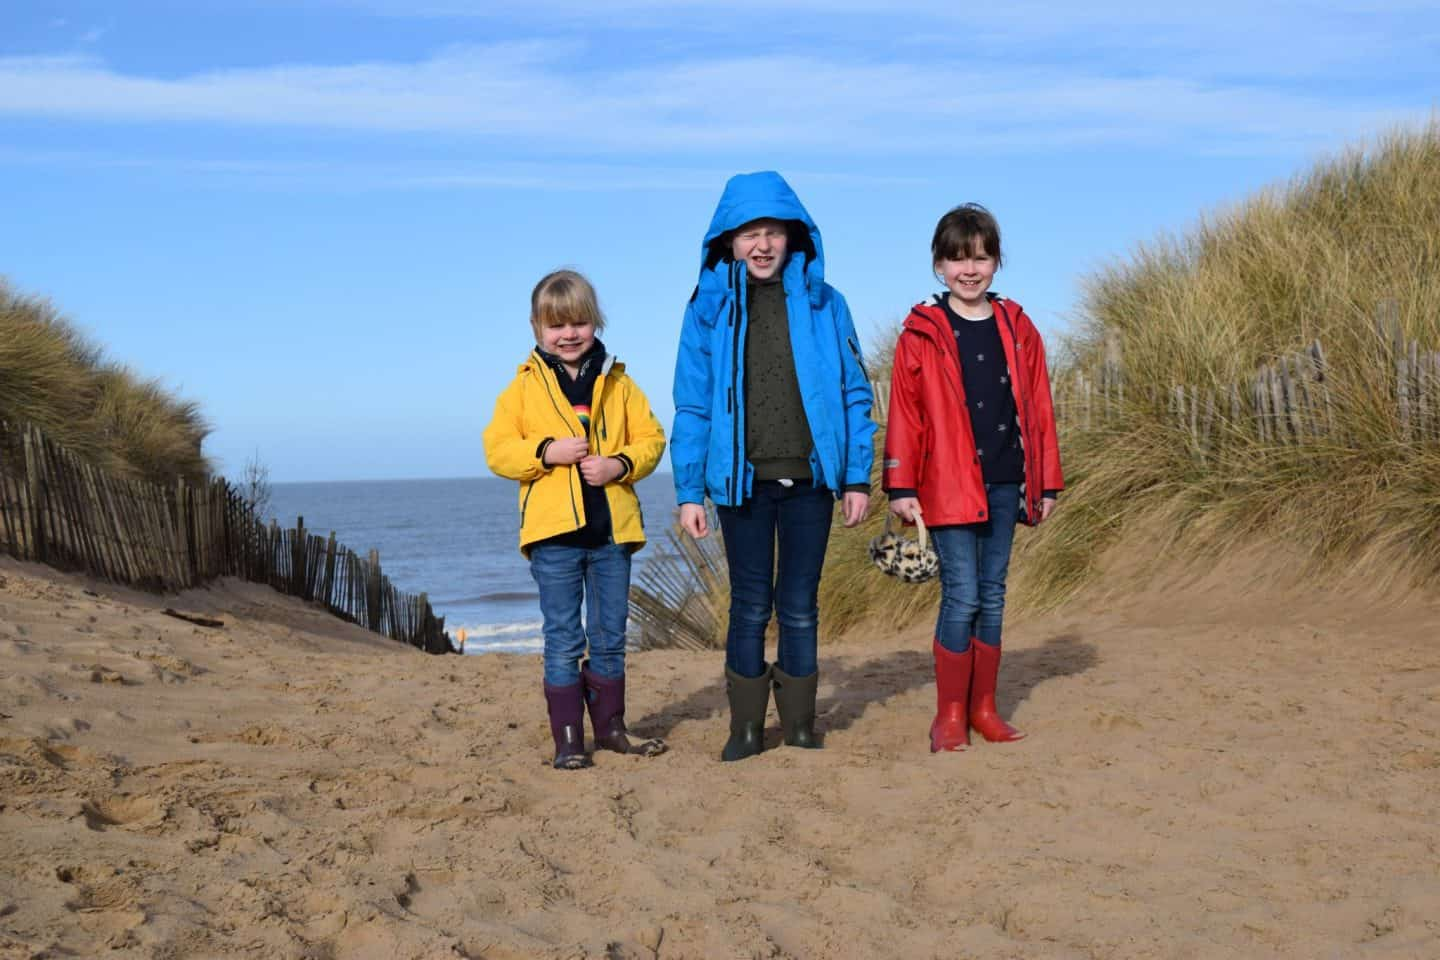 Exploring the sand dunes at Formby